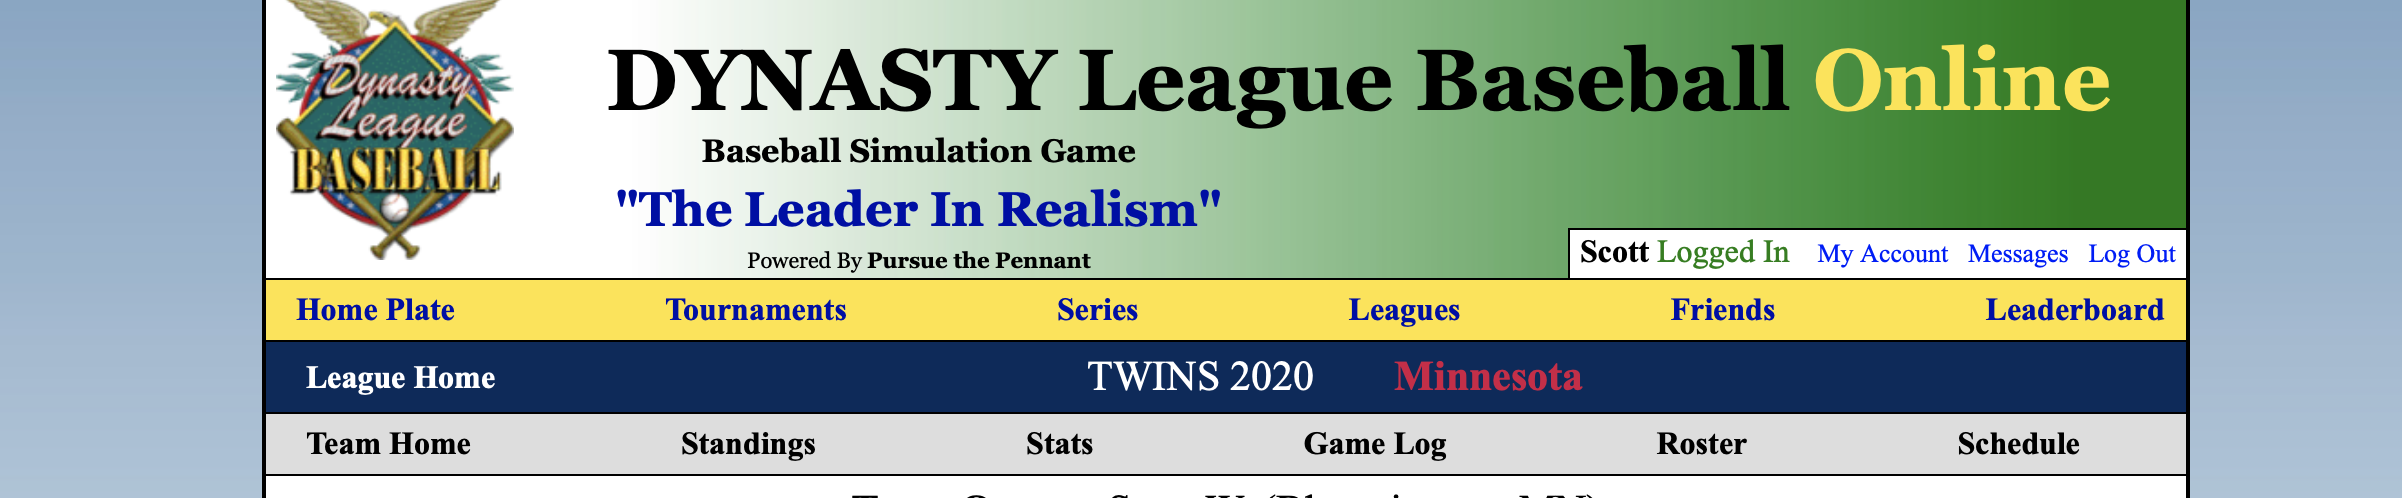 Twins Simulation Game 12, 4-7-20